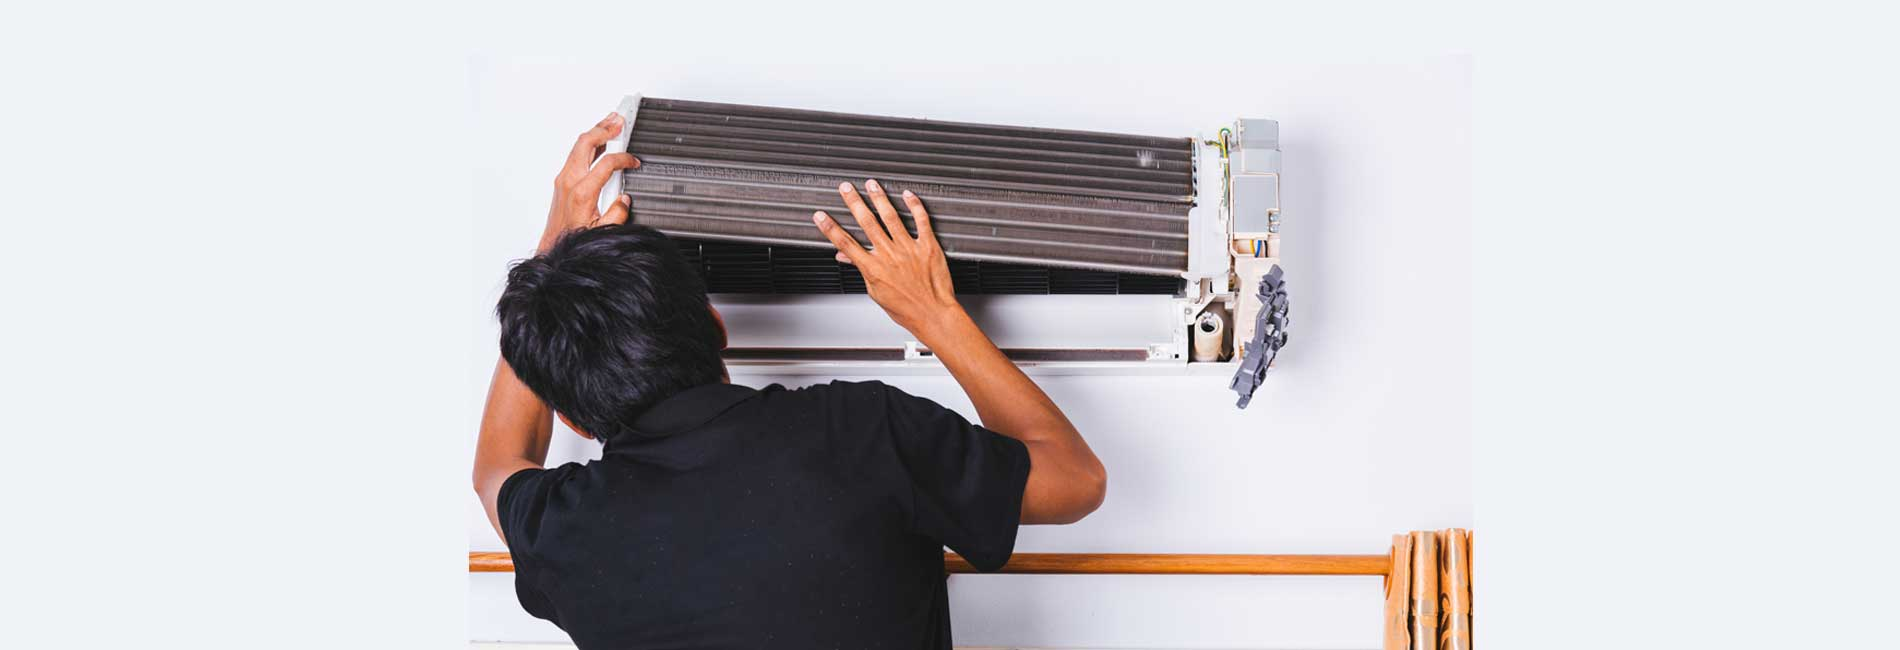 Panasonic AC General Service in Guduvanchery